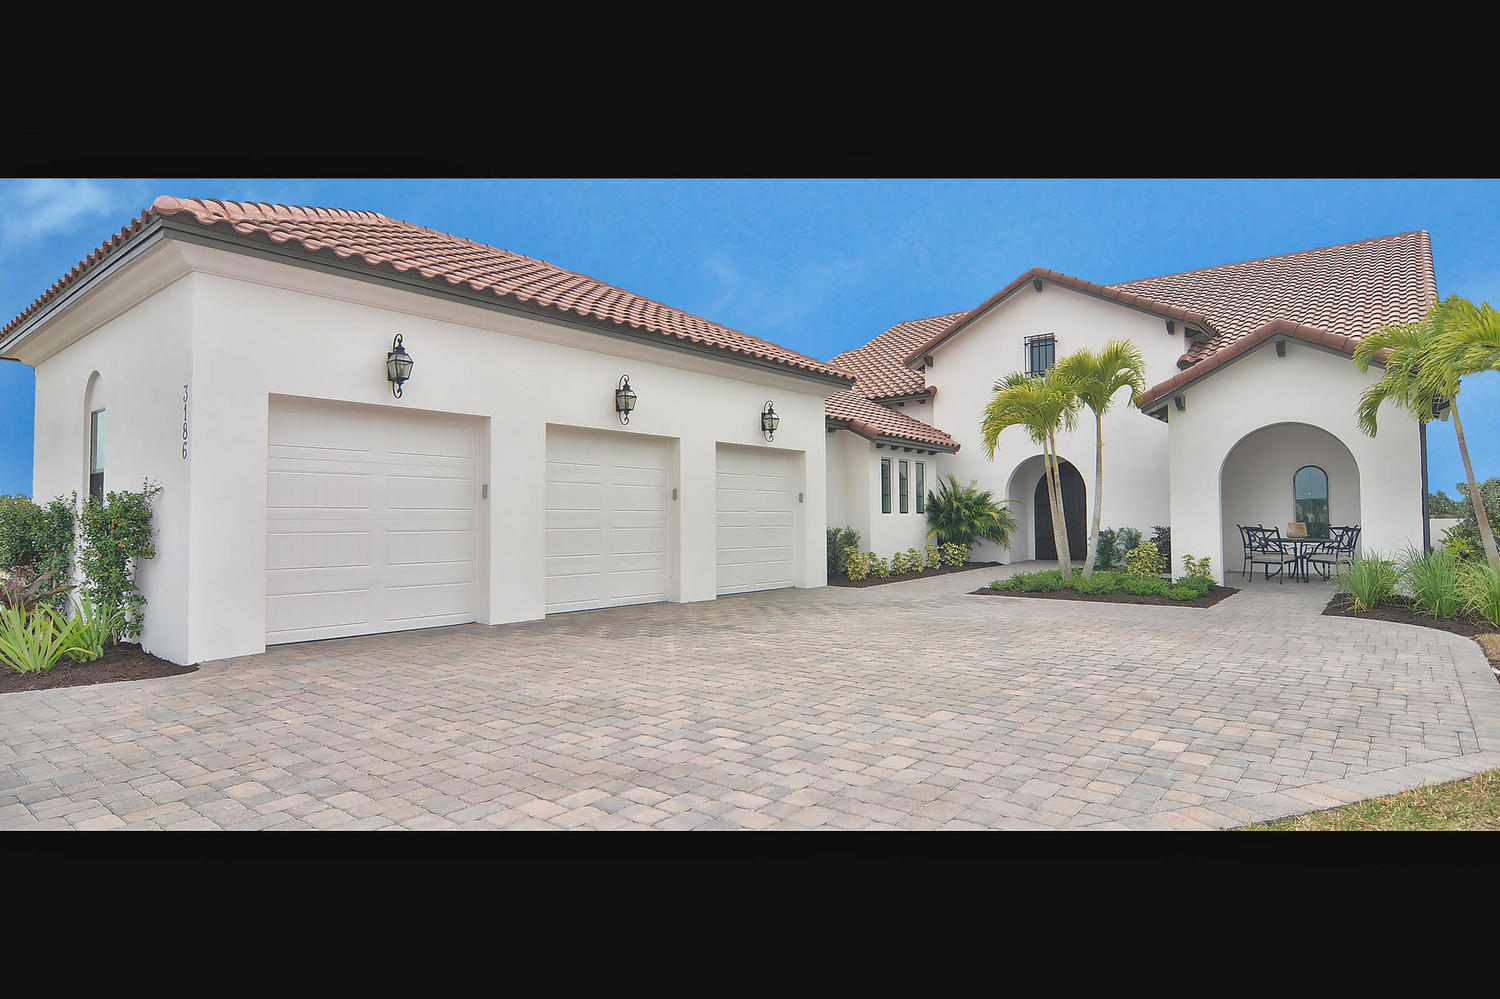 before friday my garage appeal to the adding priming curb coastal some feature glamour home doors